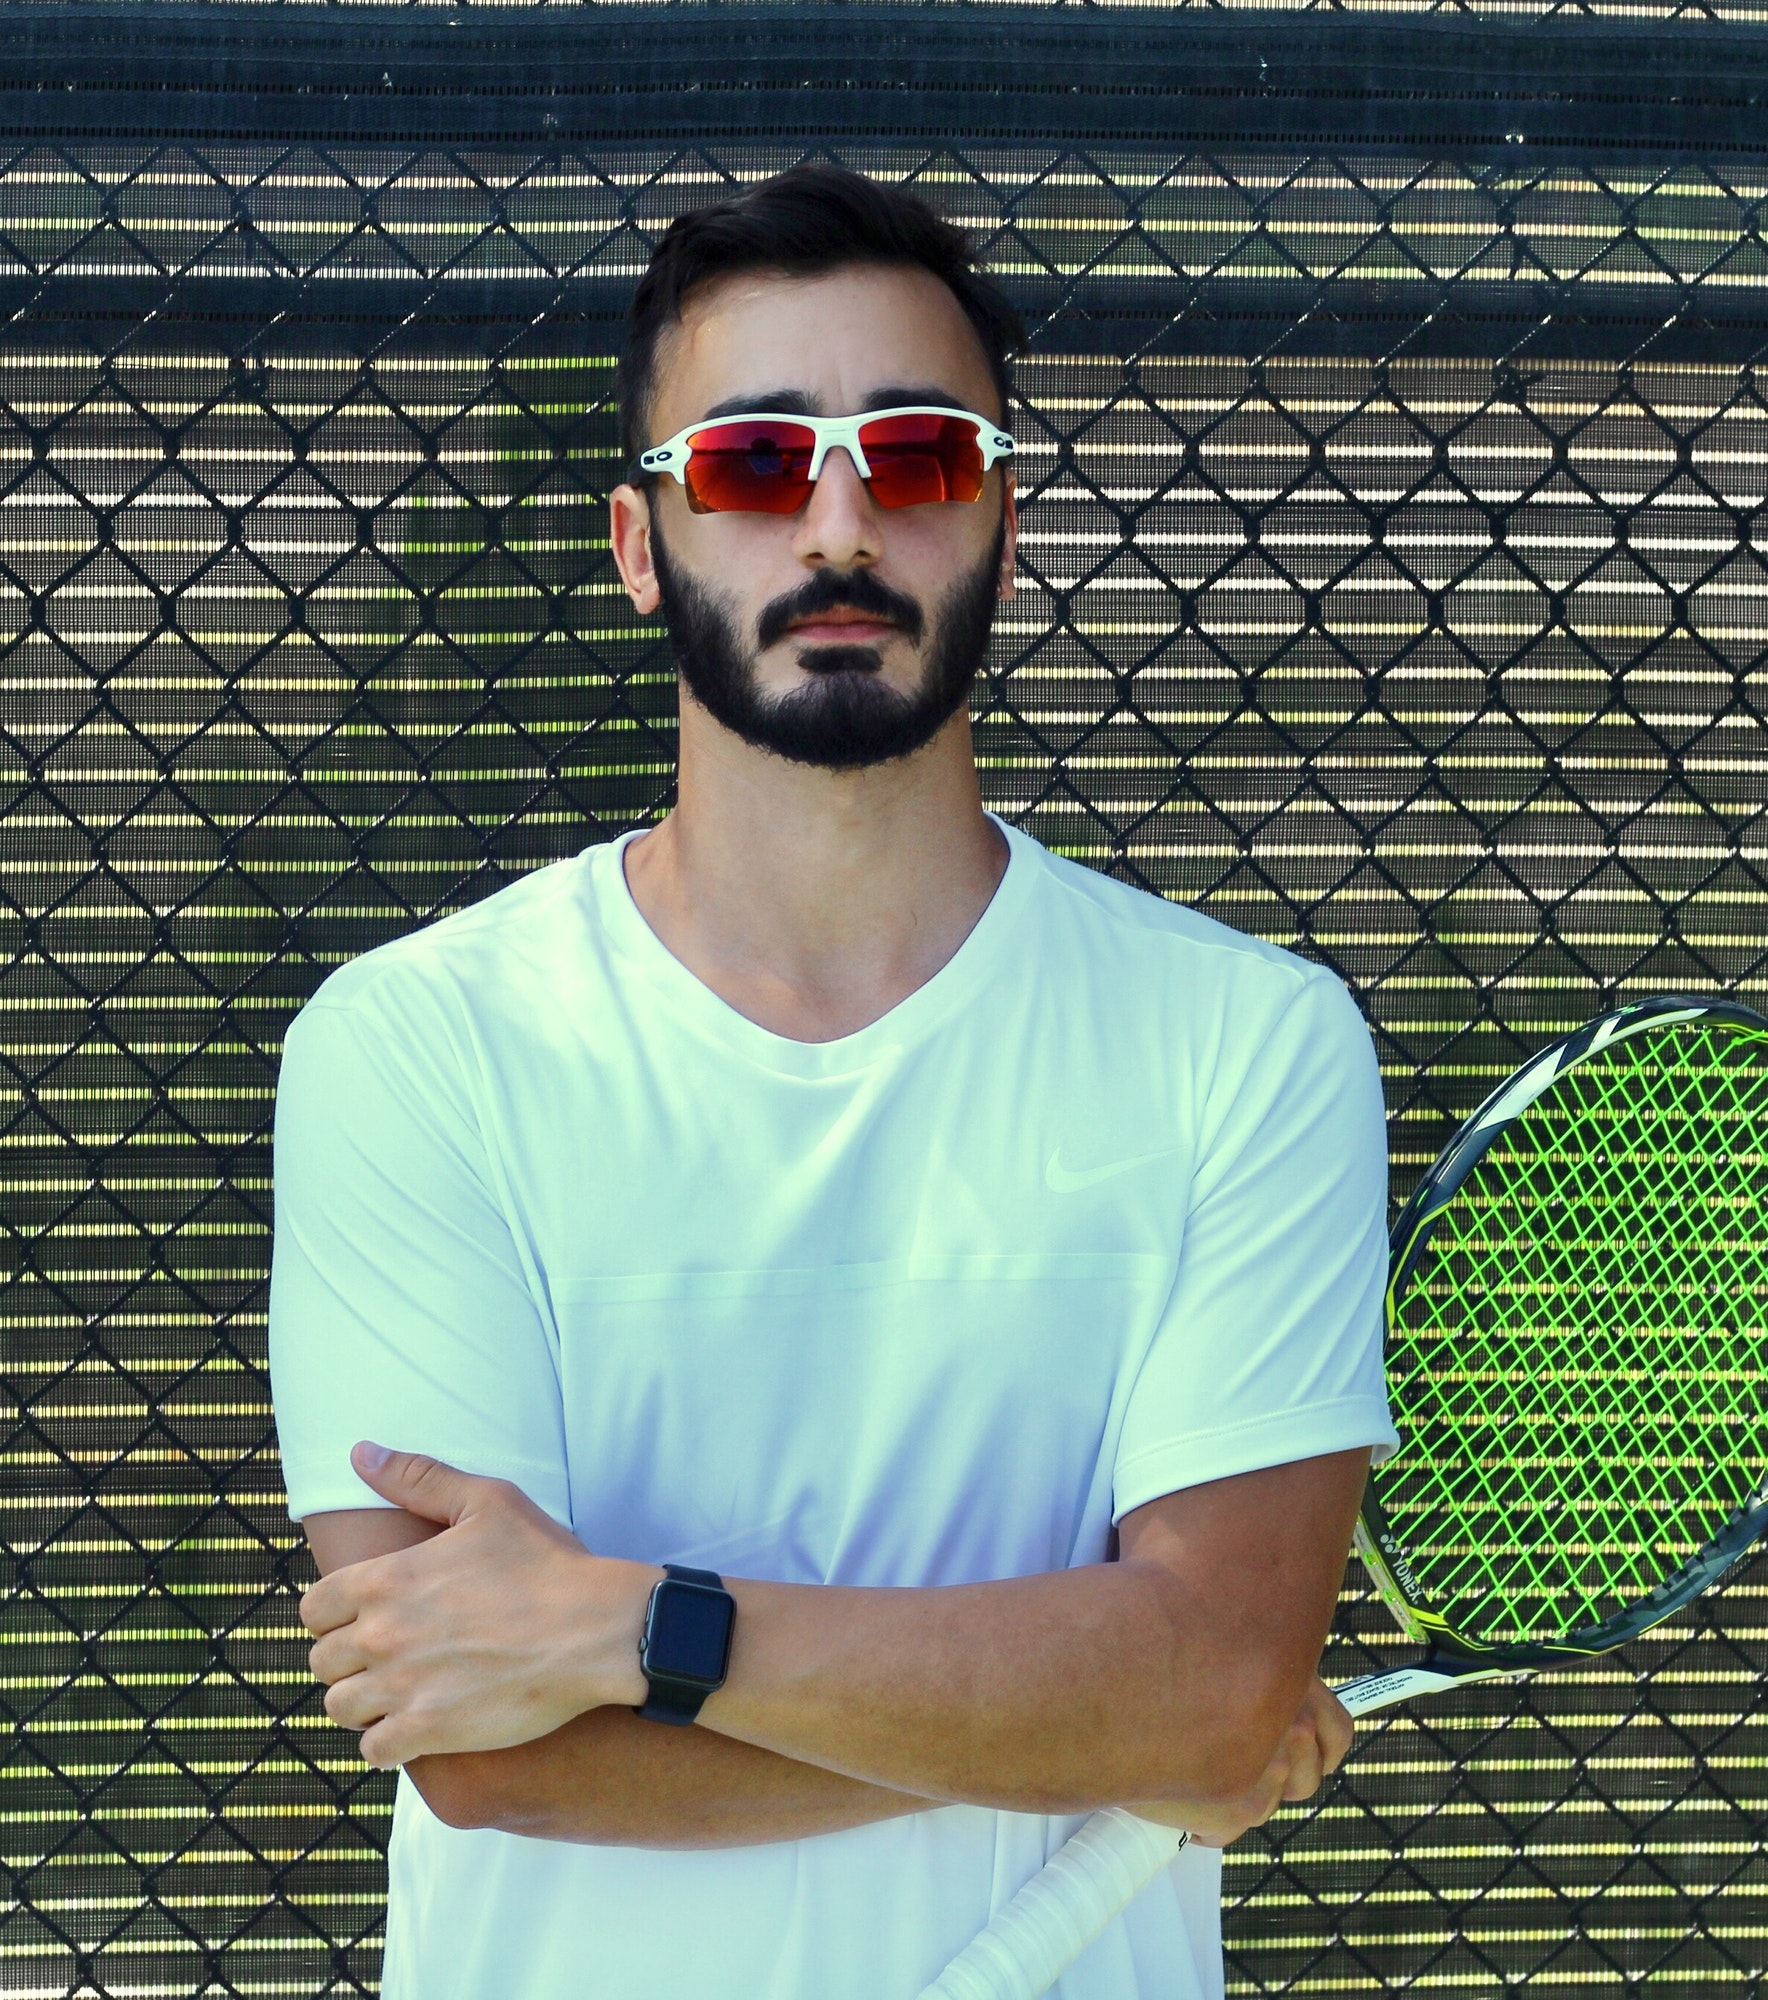 Sam T. teaches tennis lessons in Laguna Beach, CA